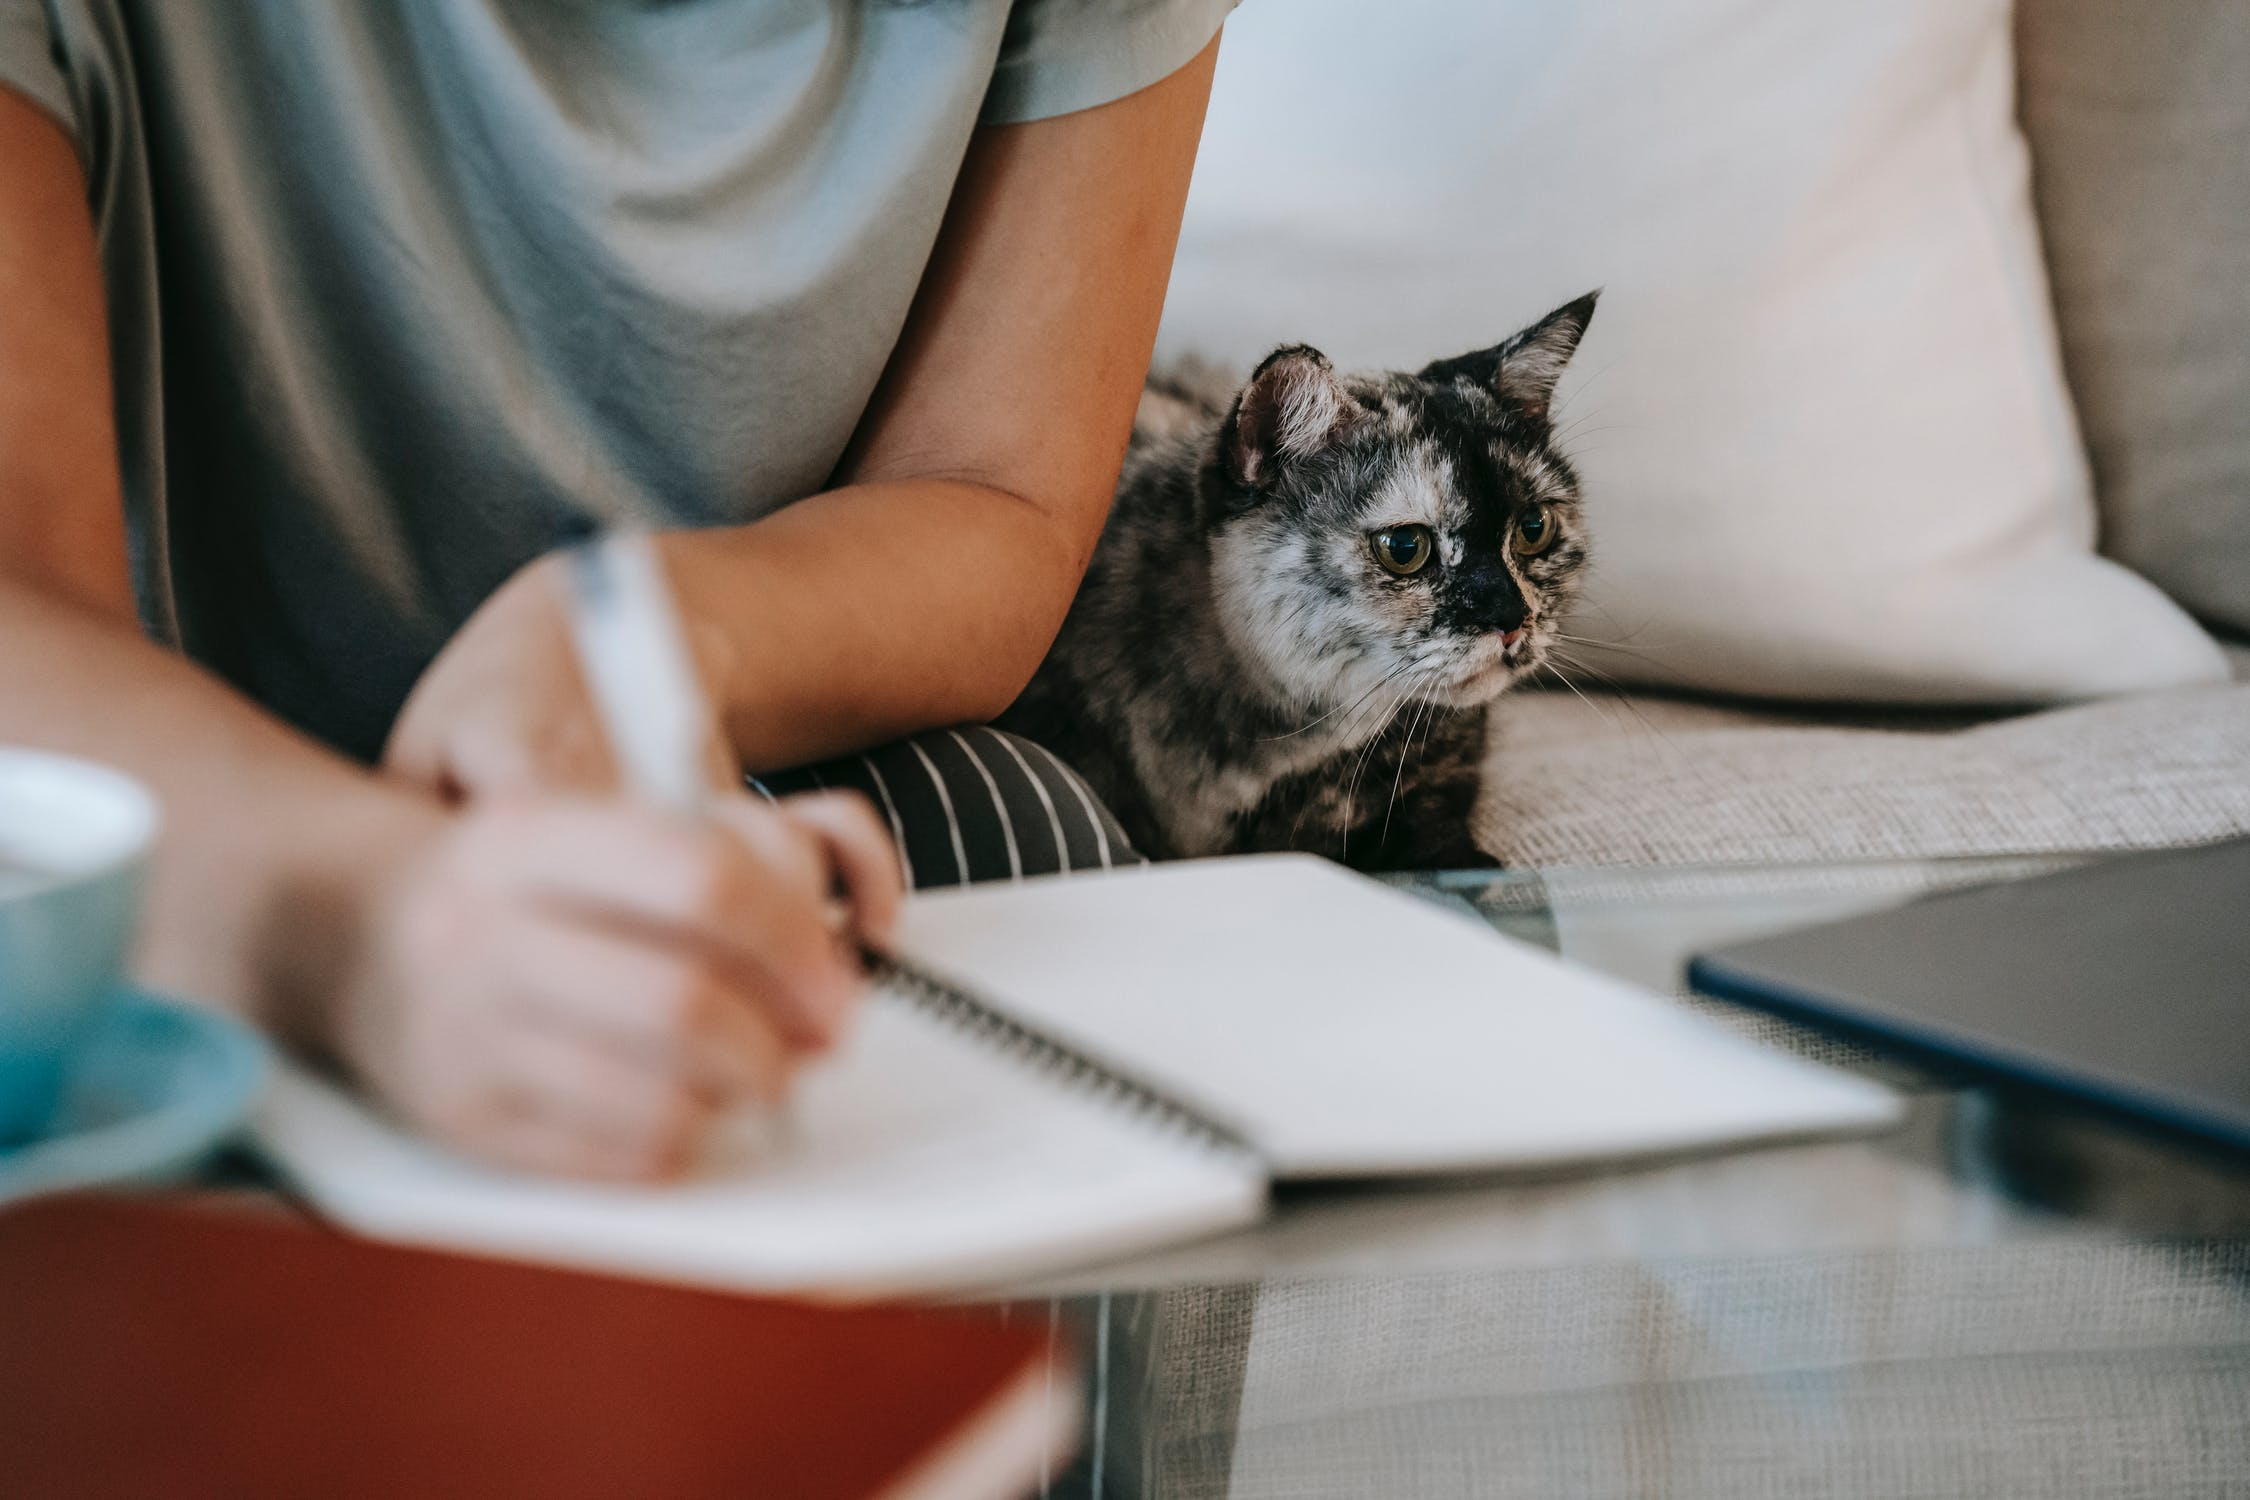 meet and greet your cat sitter, What Happens During the Meet & Greet with Your Cat Sitter?, The Comforted Kitty